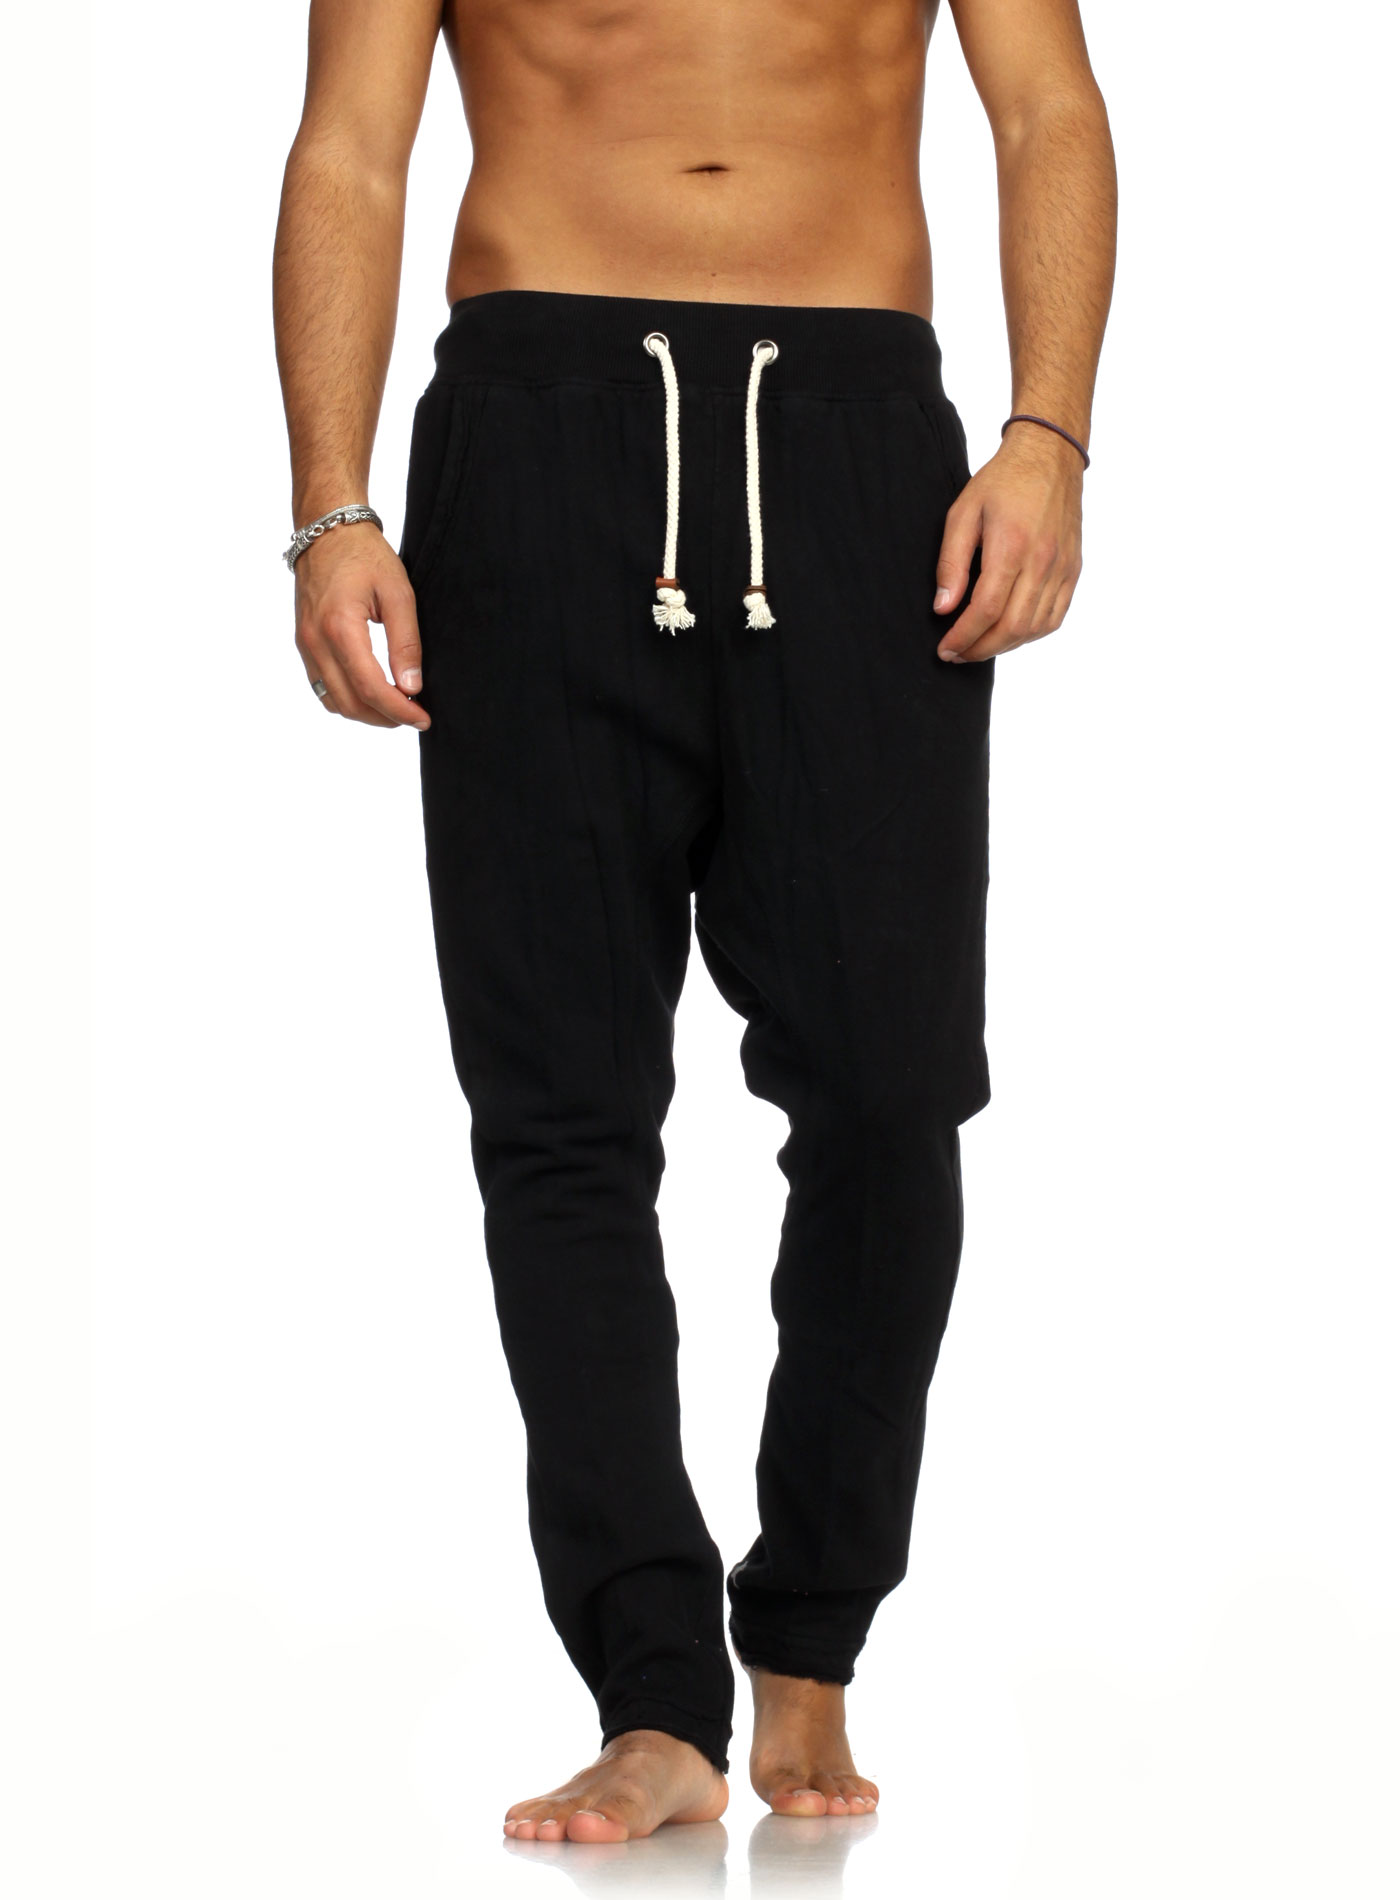 100% Polyester sweat pants 06e68de018